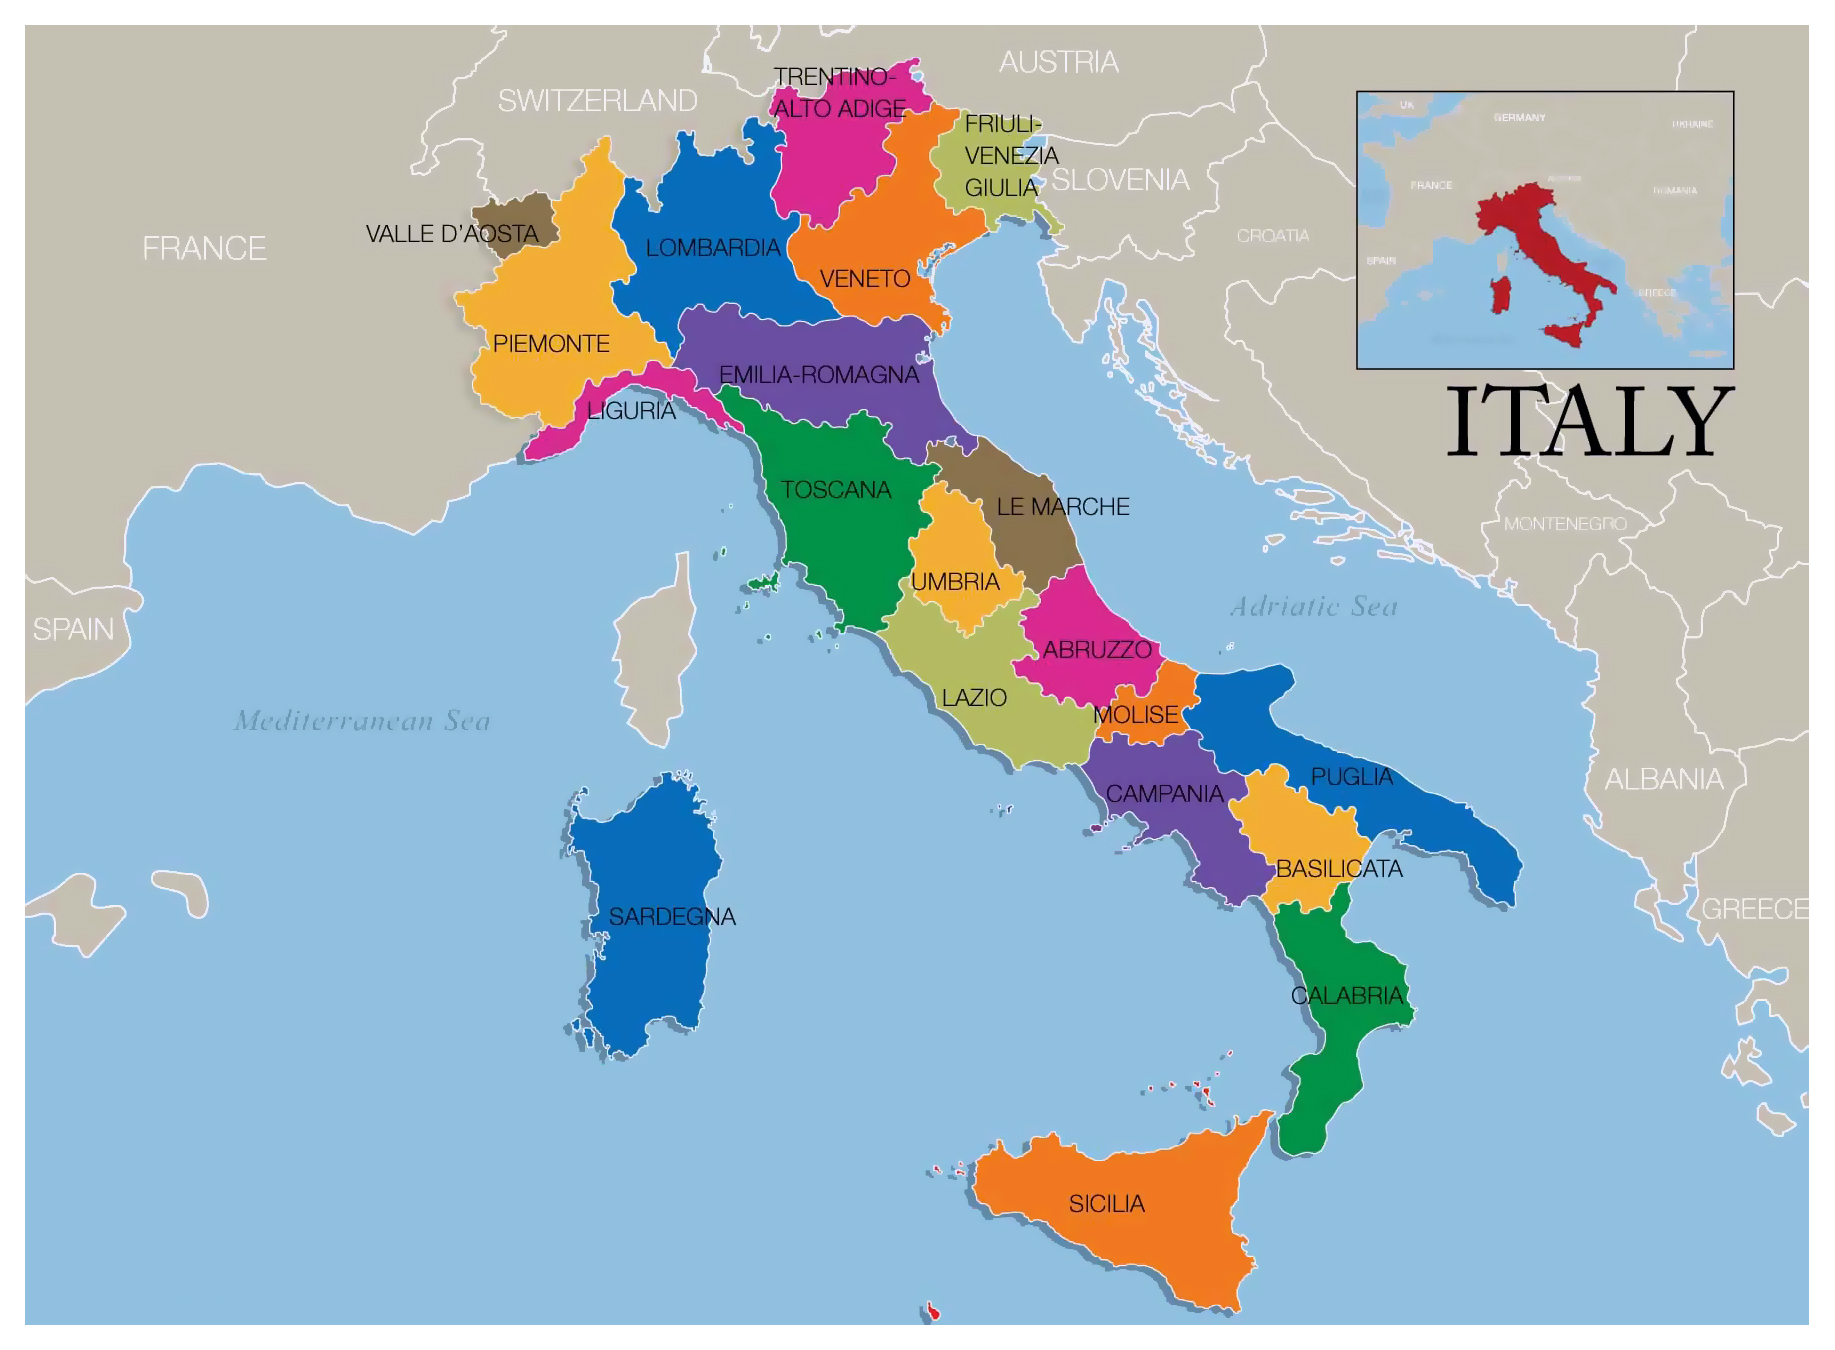 Large Map Of Italy With Regions.Large Map Of Wine Regions Of Italy Italy Europe